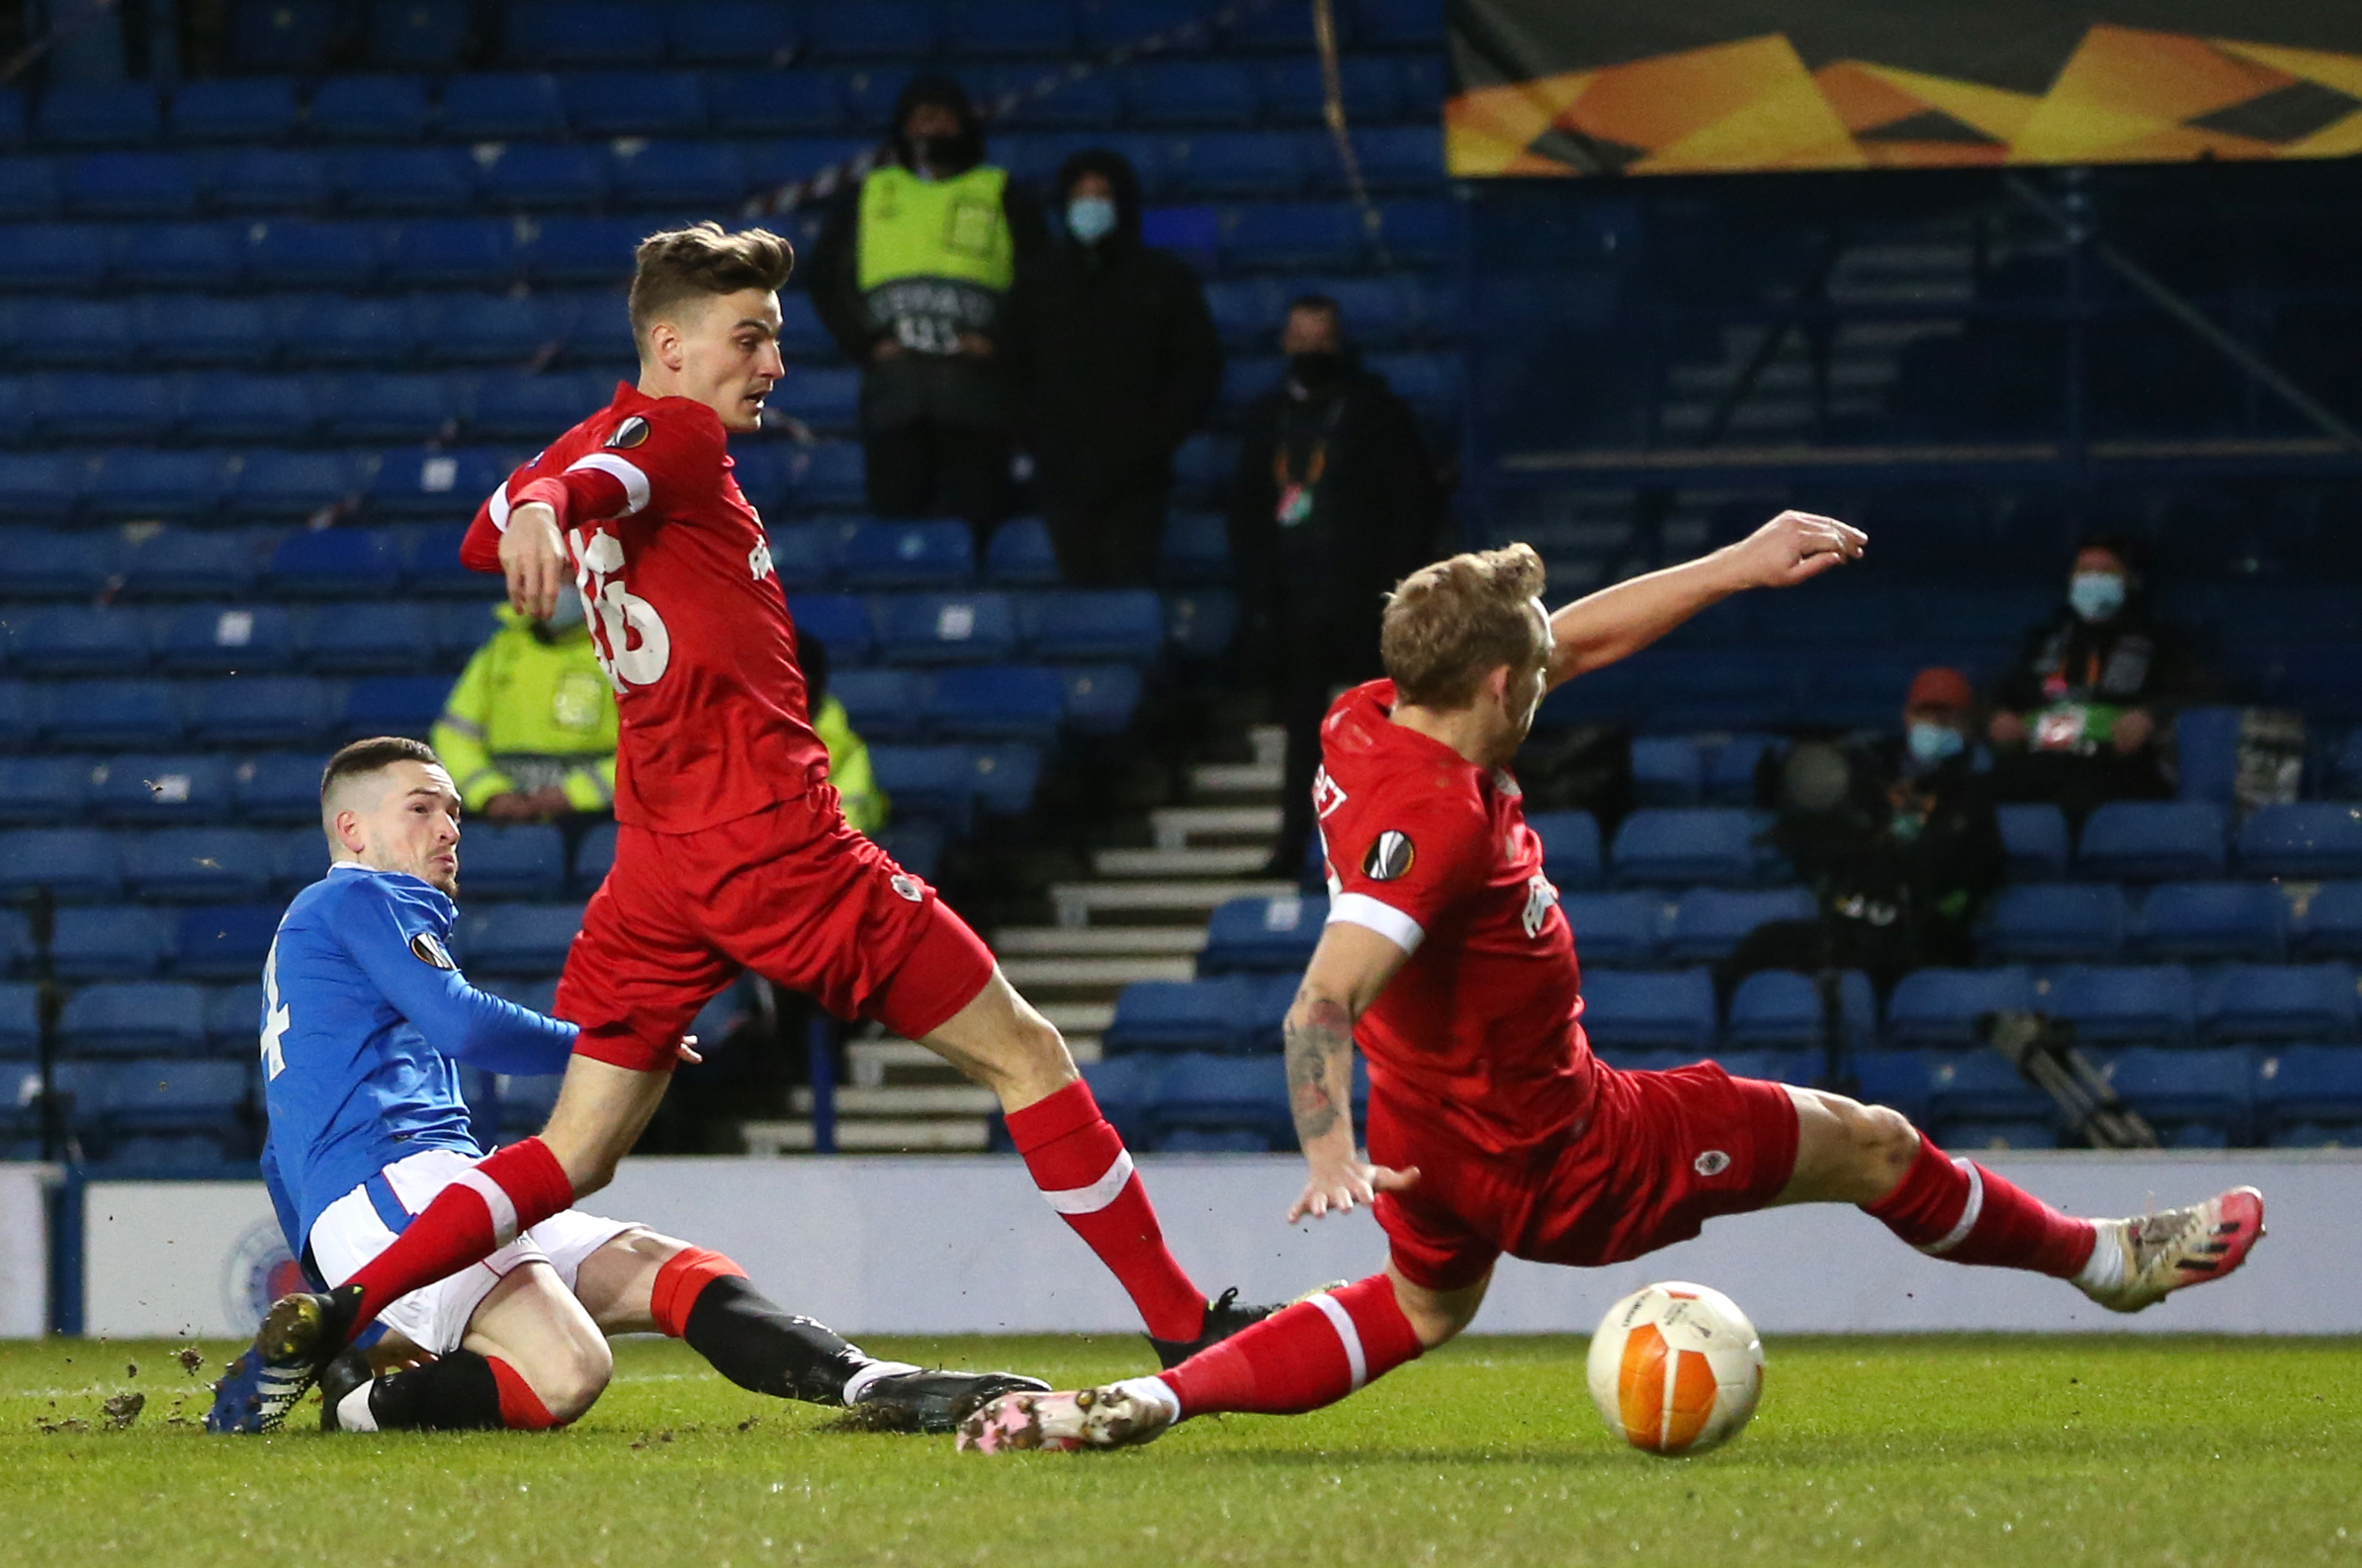 Ryan Kent reveals he wants Rangers to go all the way in the Europa League after five goal rout of Royal Antwerp